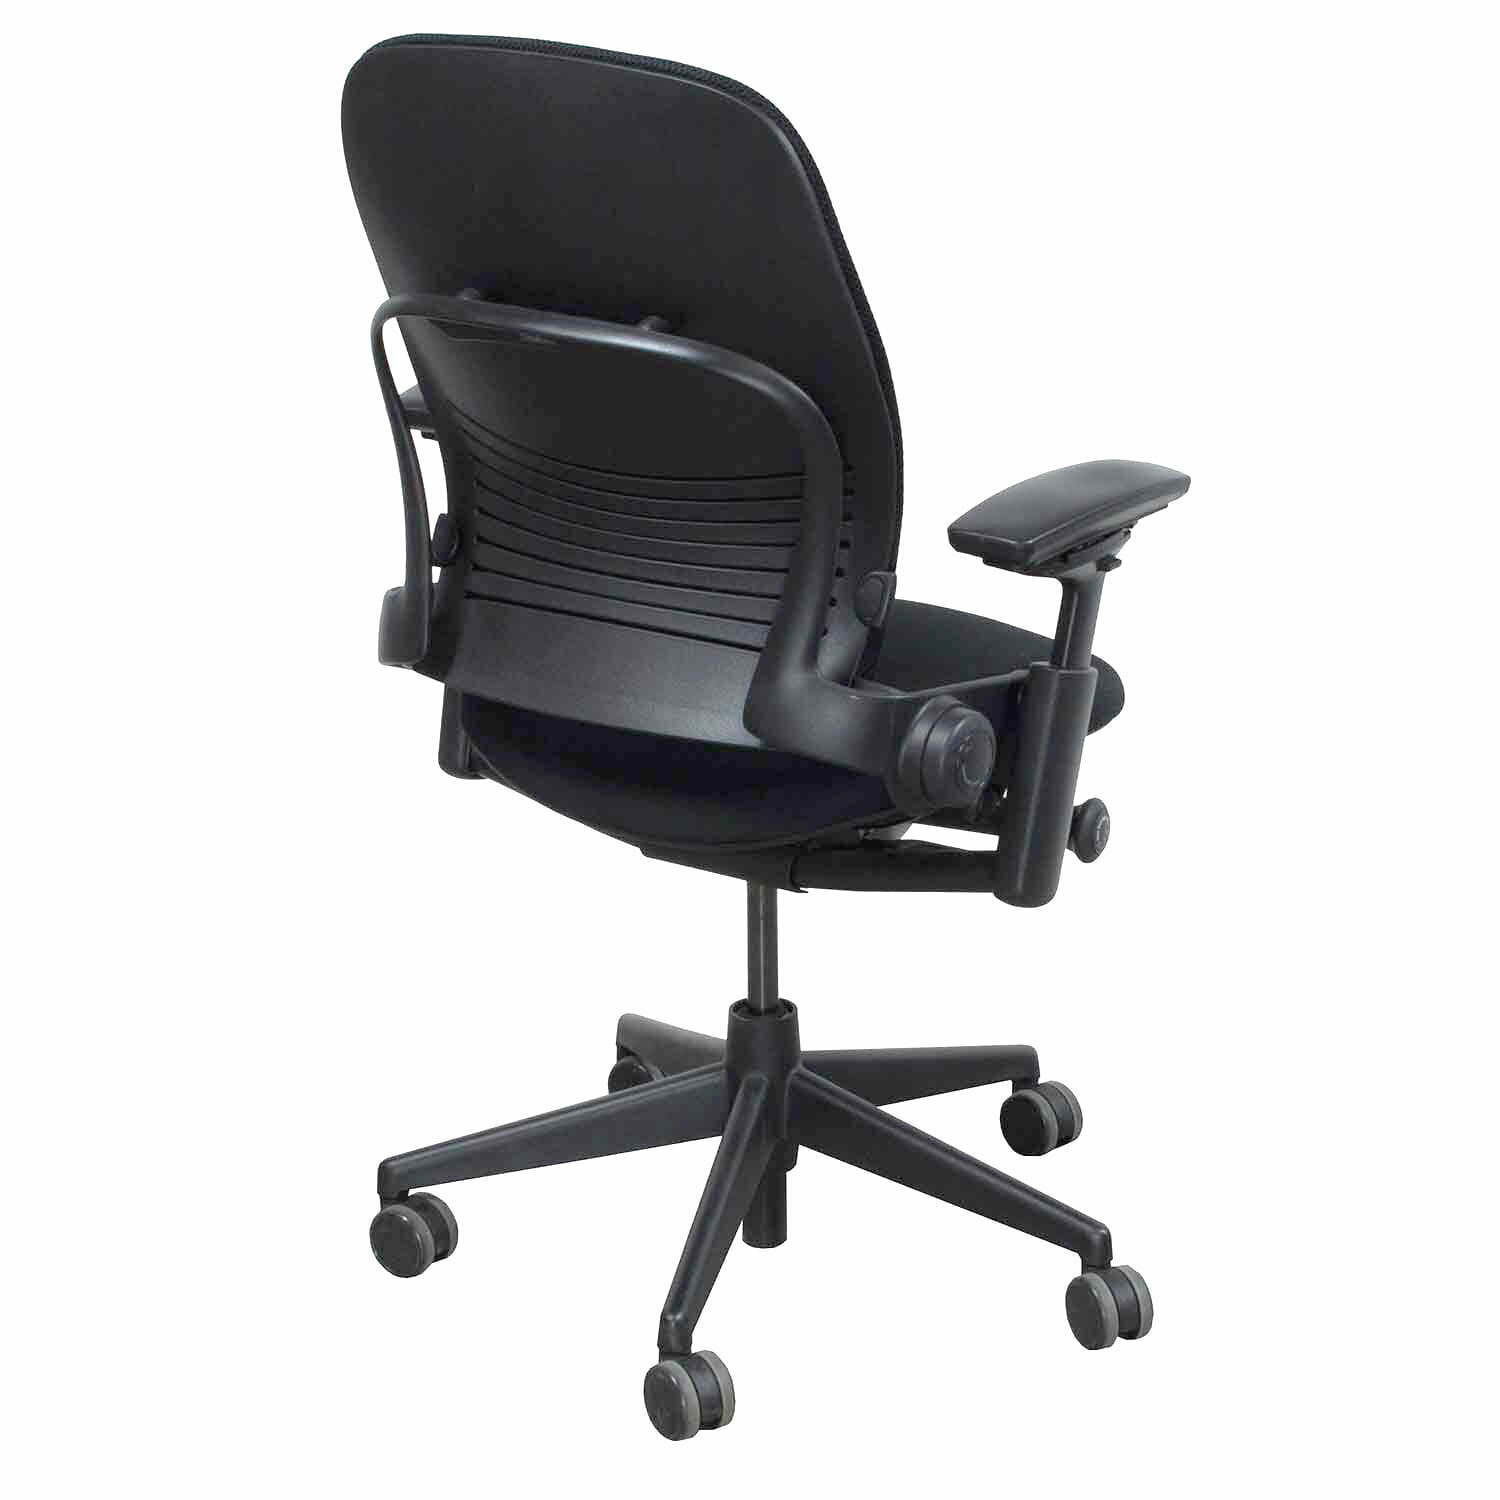 Steelcase Chair Steelcase Leap 2 Office Chair Unisource Office Furniture